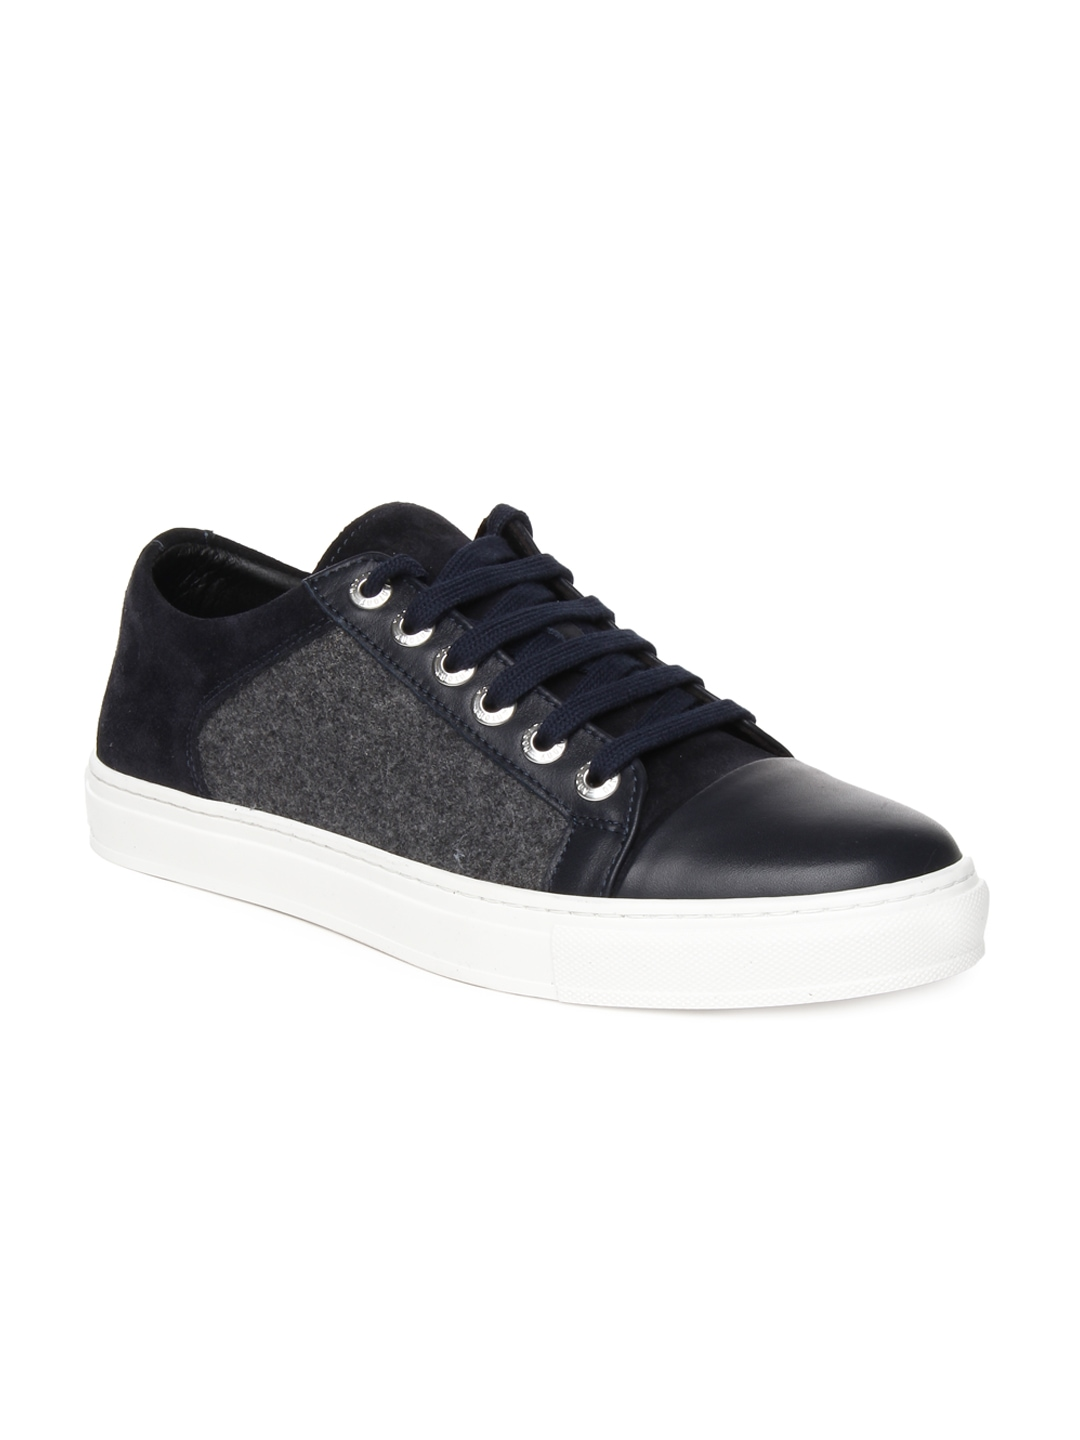 myntra antony morato men navy grey sneakers 557106 buy myntra antony morato casual shoes at. Black Bedroom Furniture Sets. Home Design Ideas